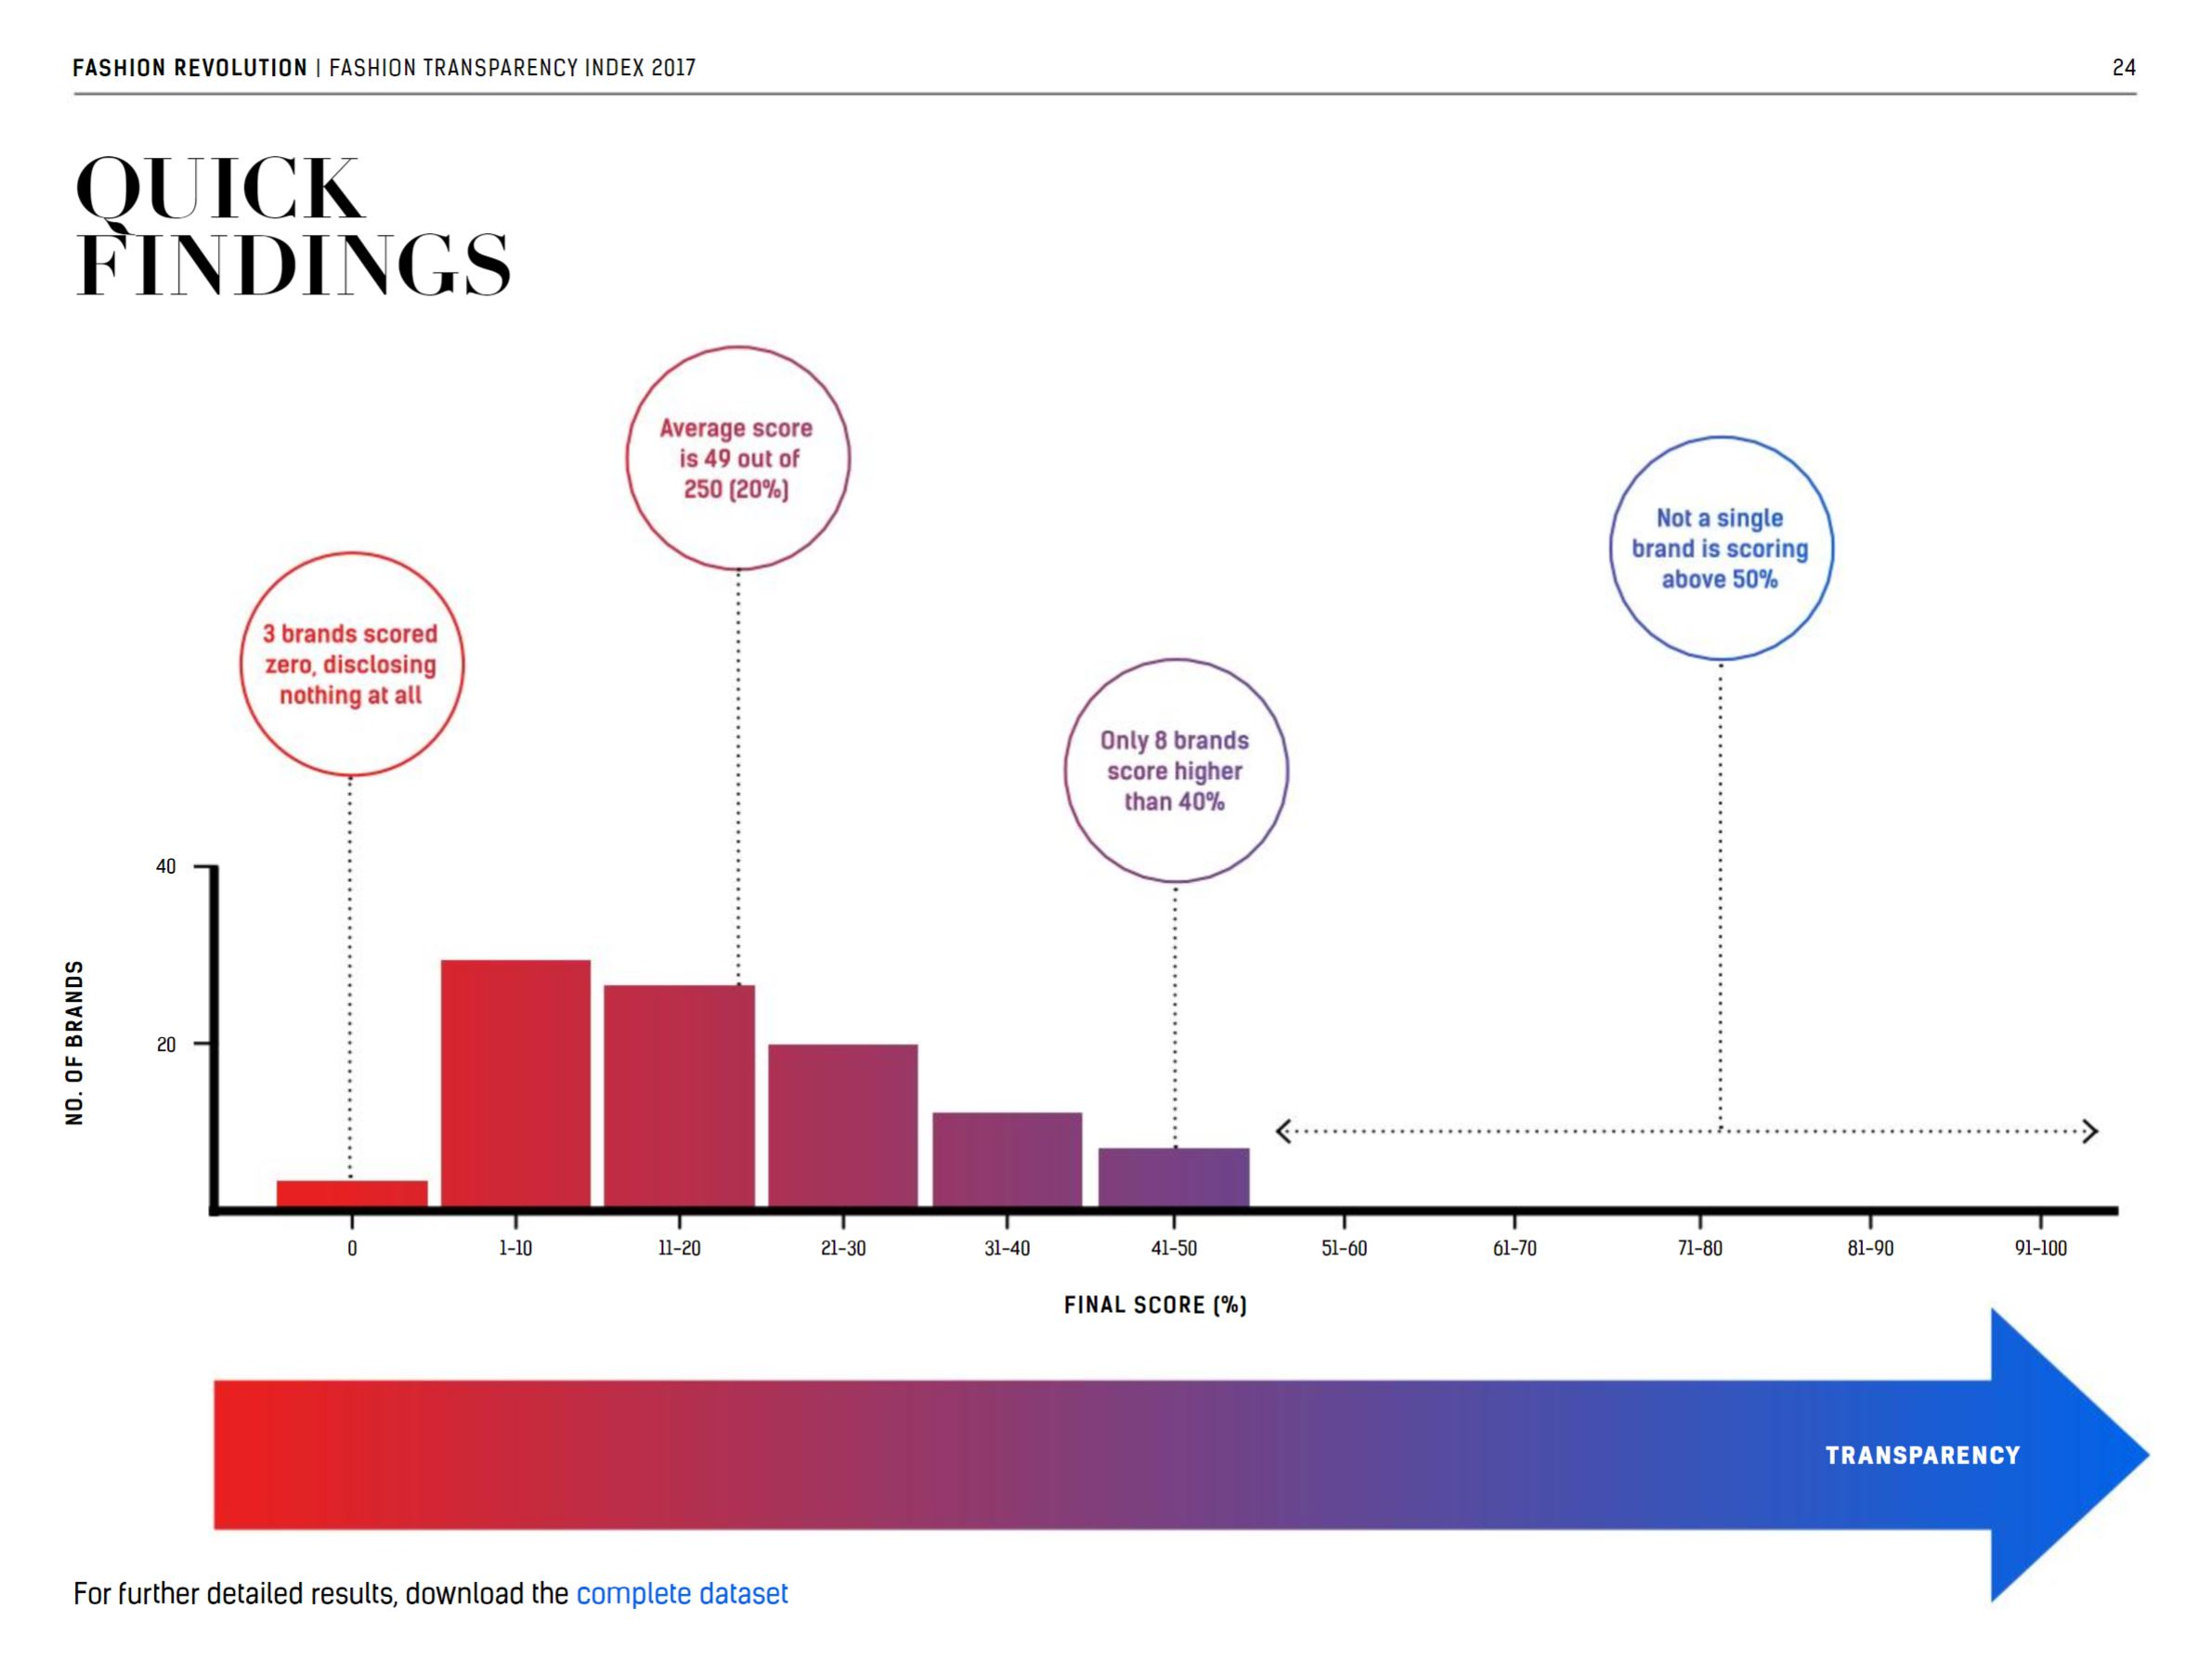 fashion transparency index 2017 quick findings